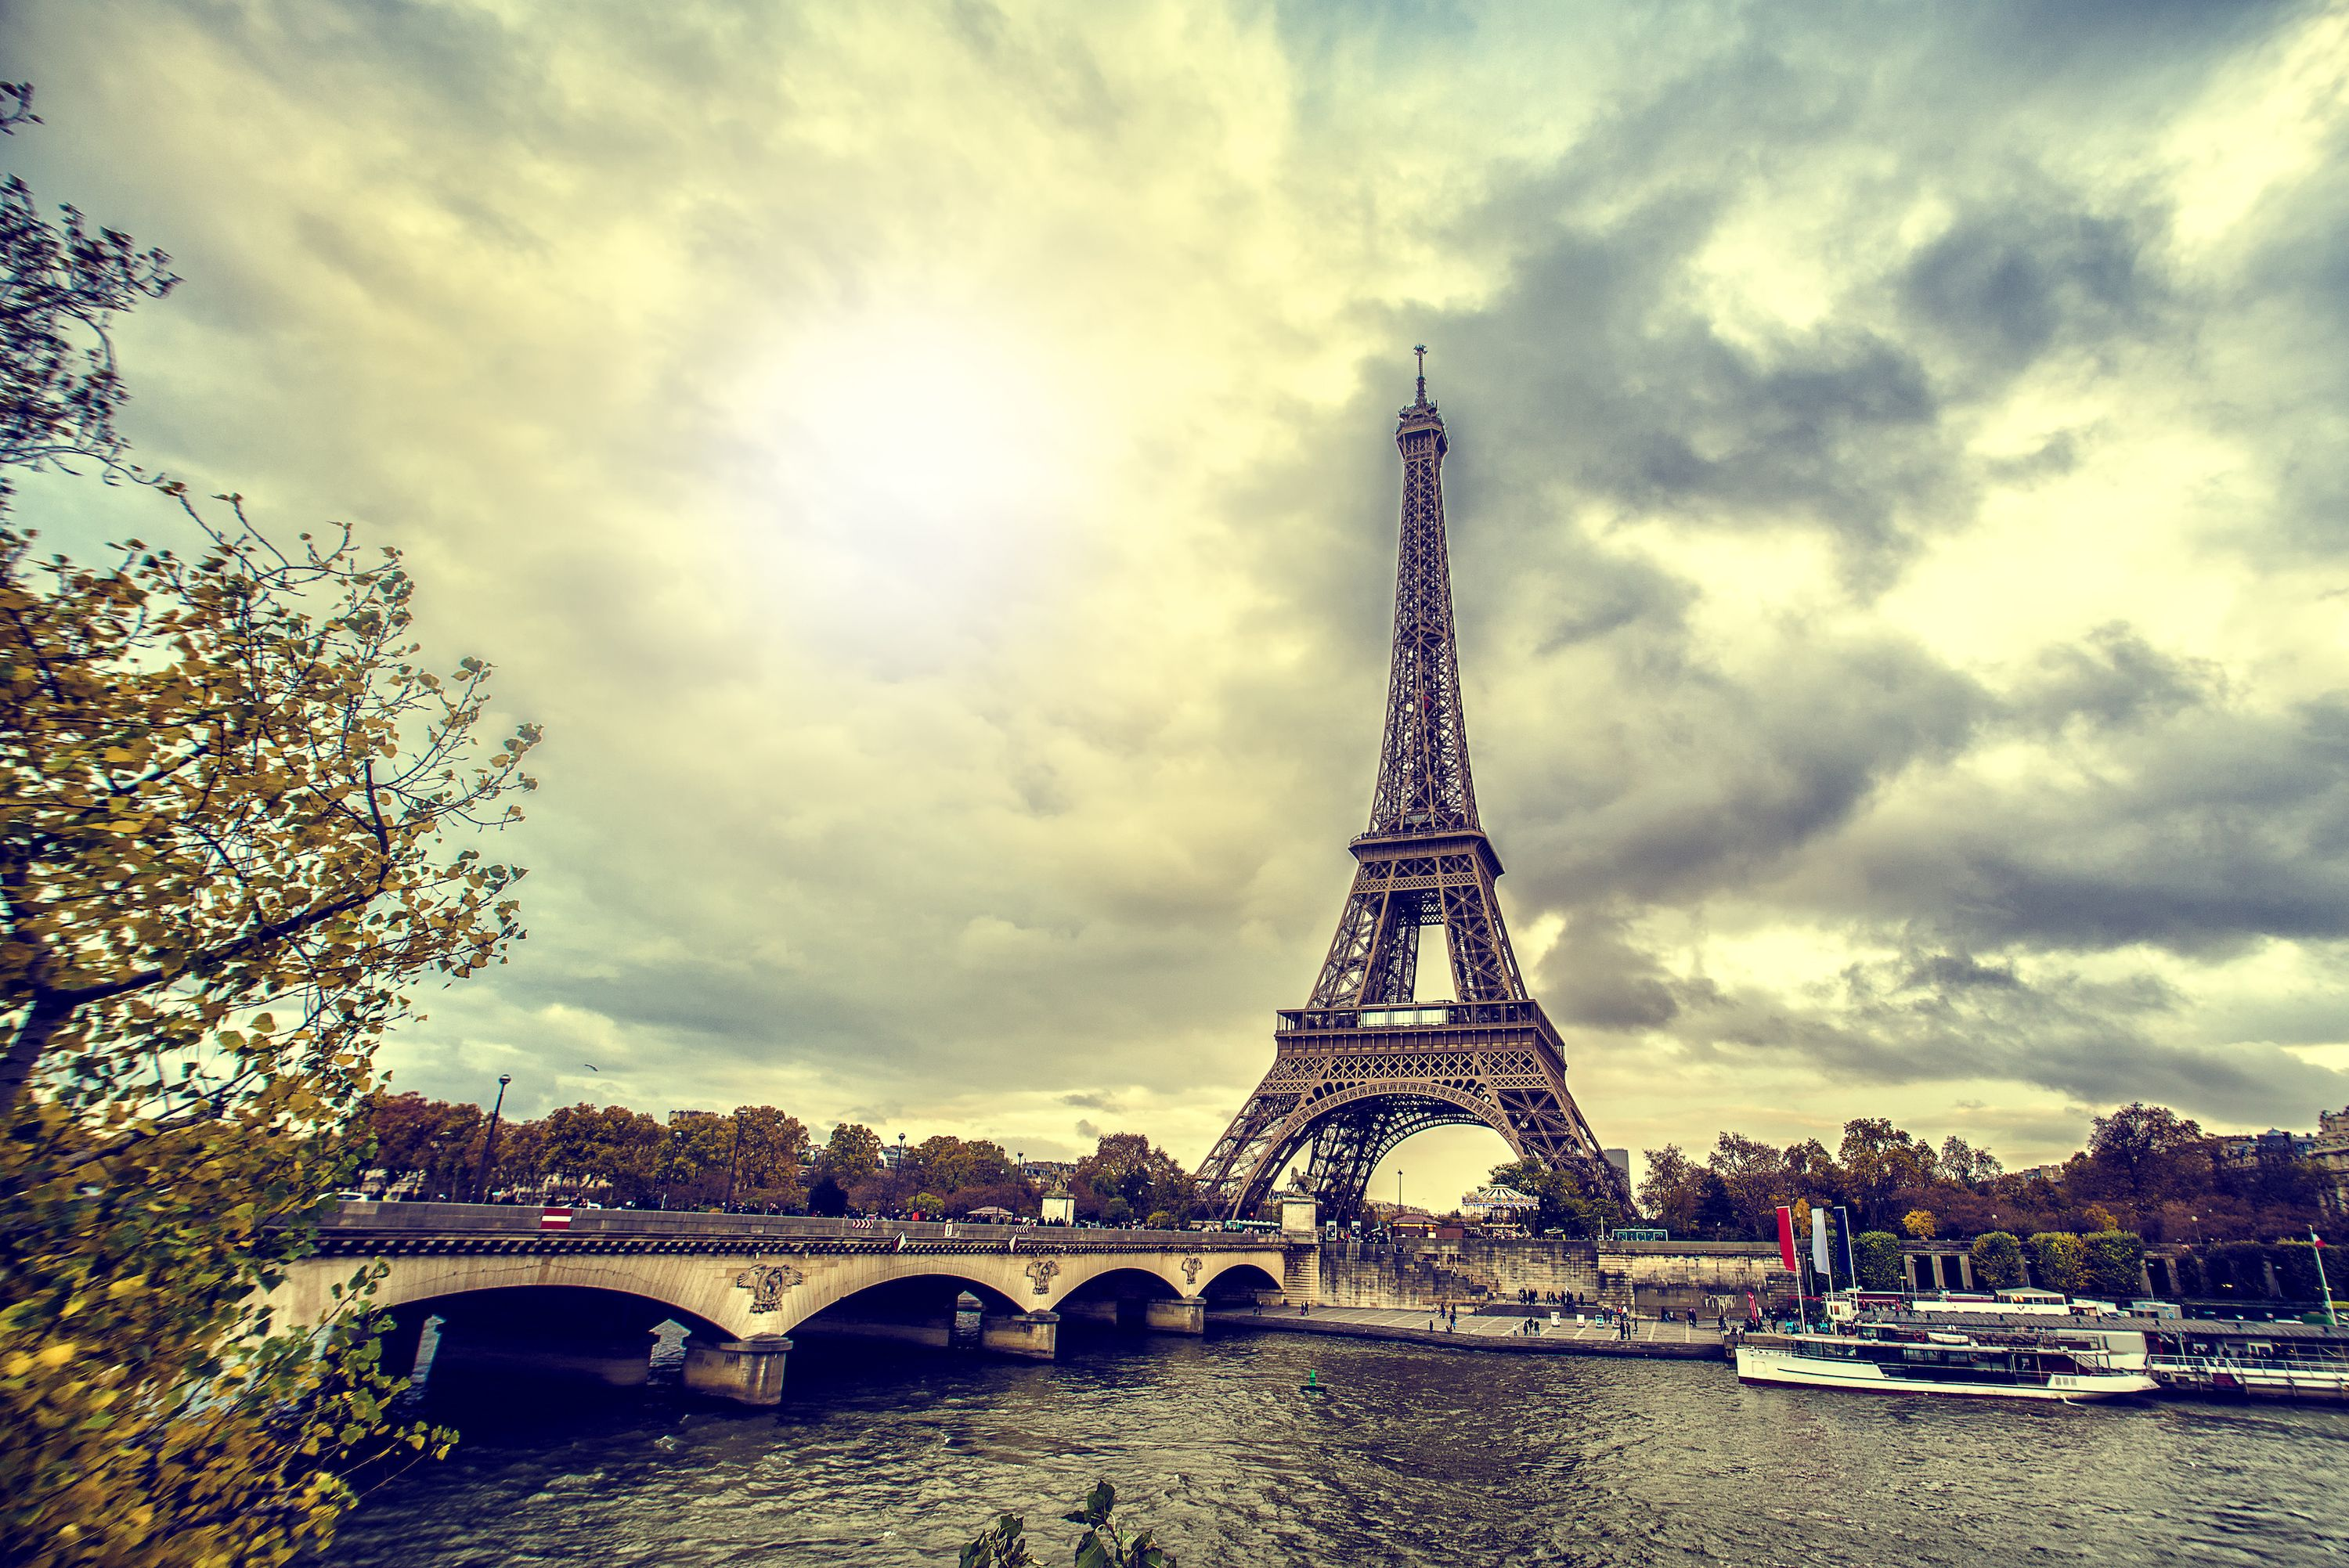 The Eiffel Tower Is Getting A Makeover - Eiffel Tower Paris History